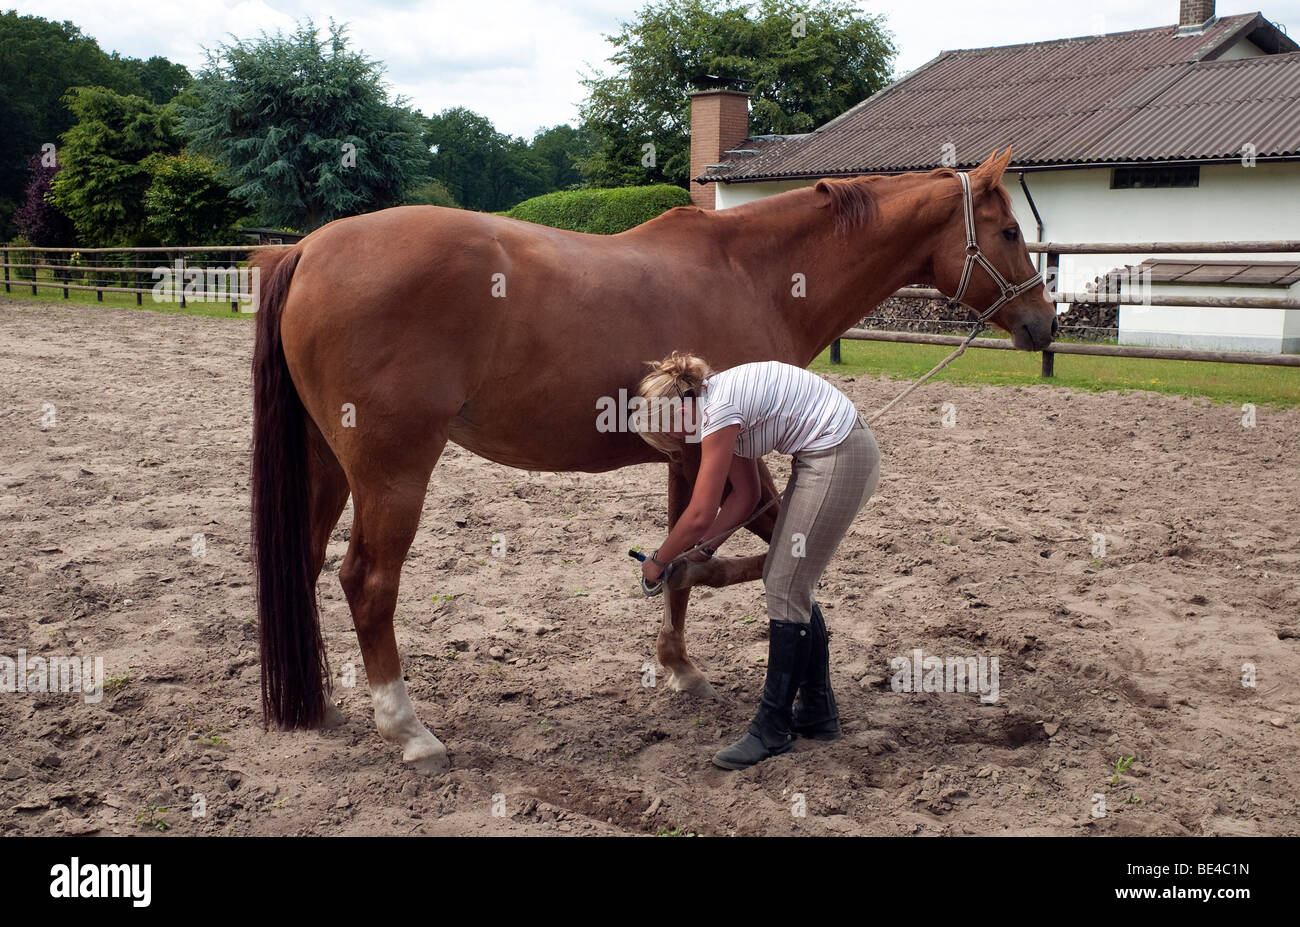 Teenage girl cleaning the hooves of a horse - Stock Image